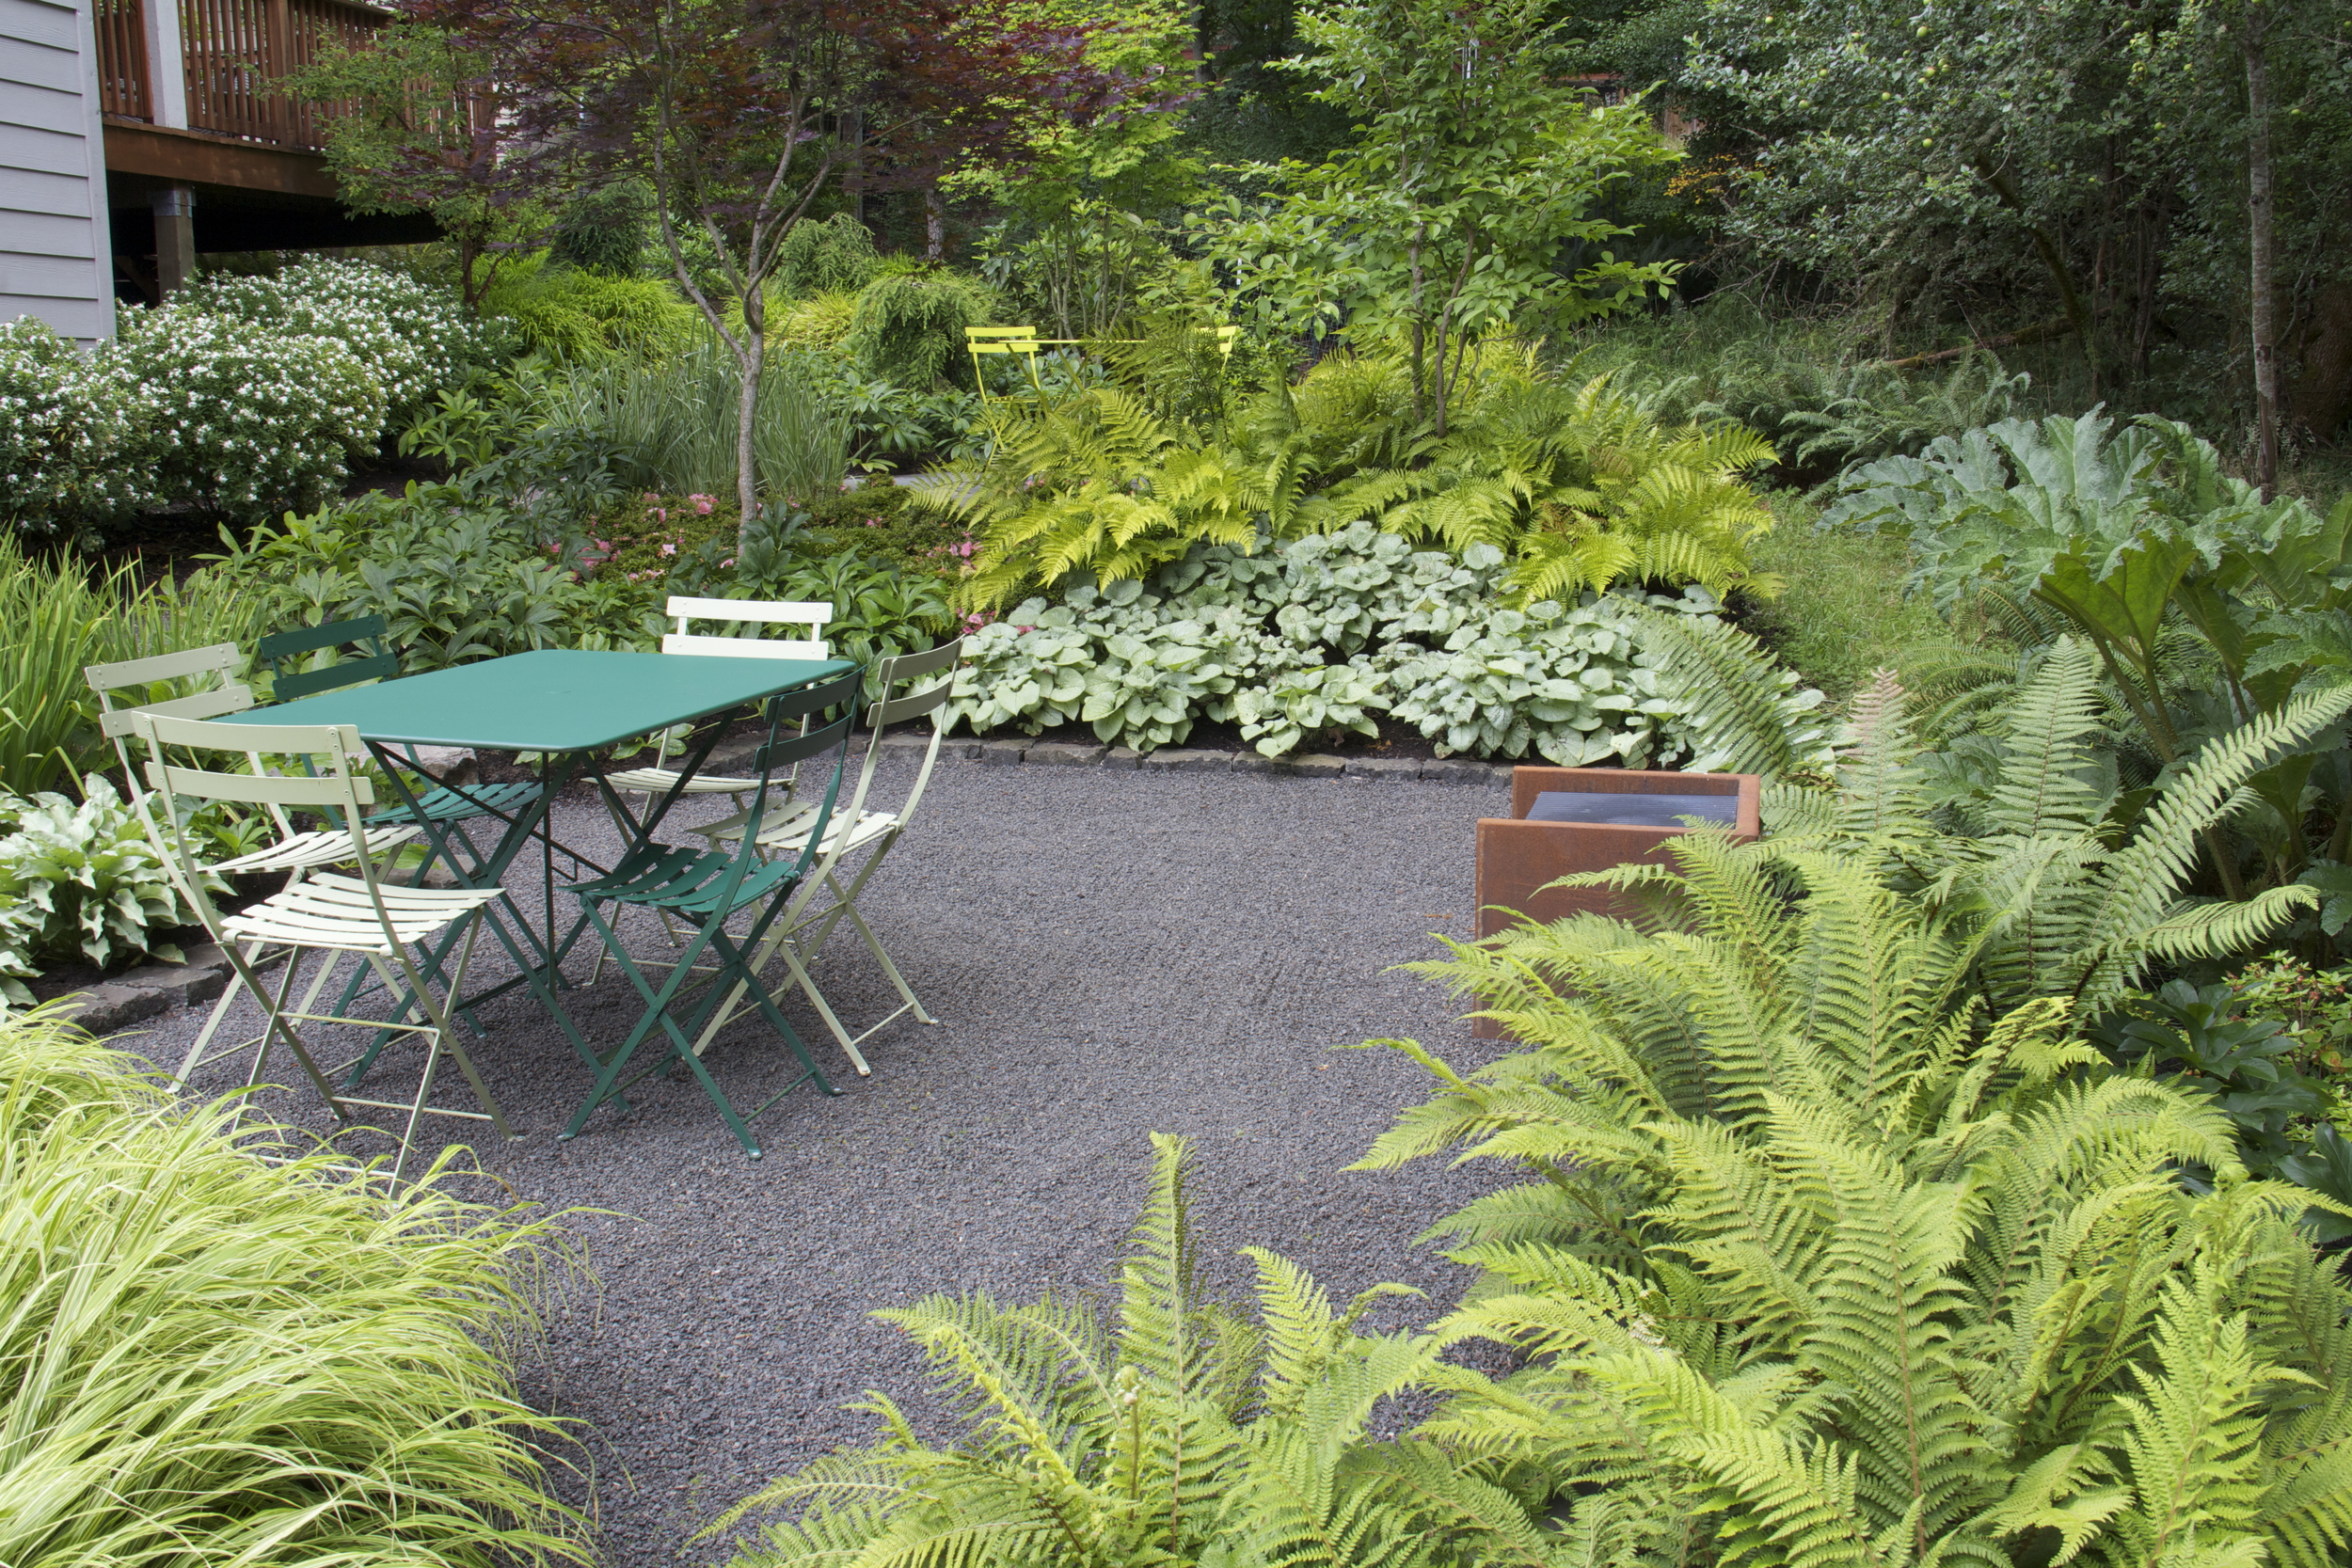 Quarter minus gravel is a soft, low maintenance and lower cost option for a path or terrace.  Its dark gray color looks quite at home in this shady, northwest garden.